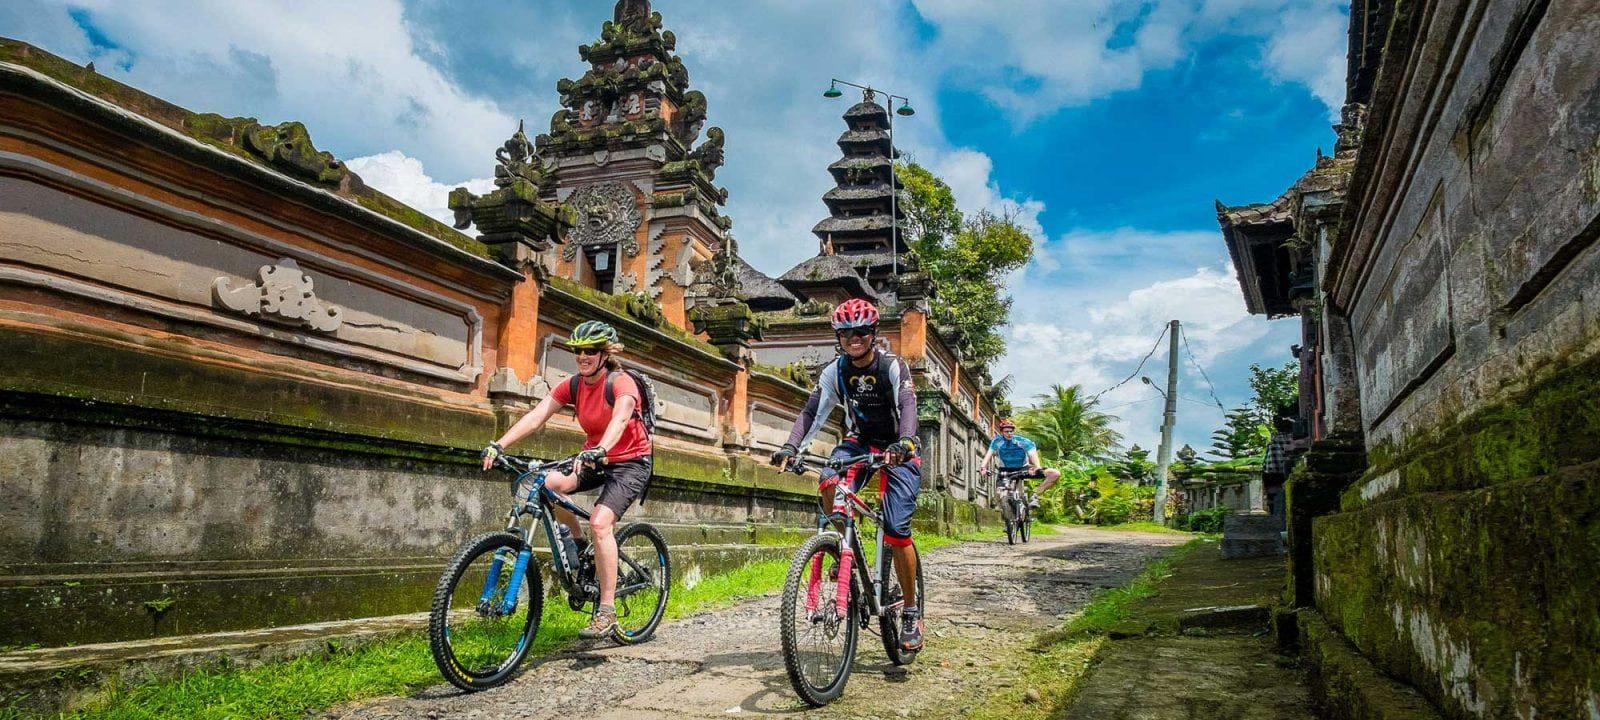 Adventure Cycling by Bali Red Paddle